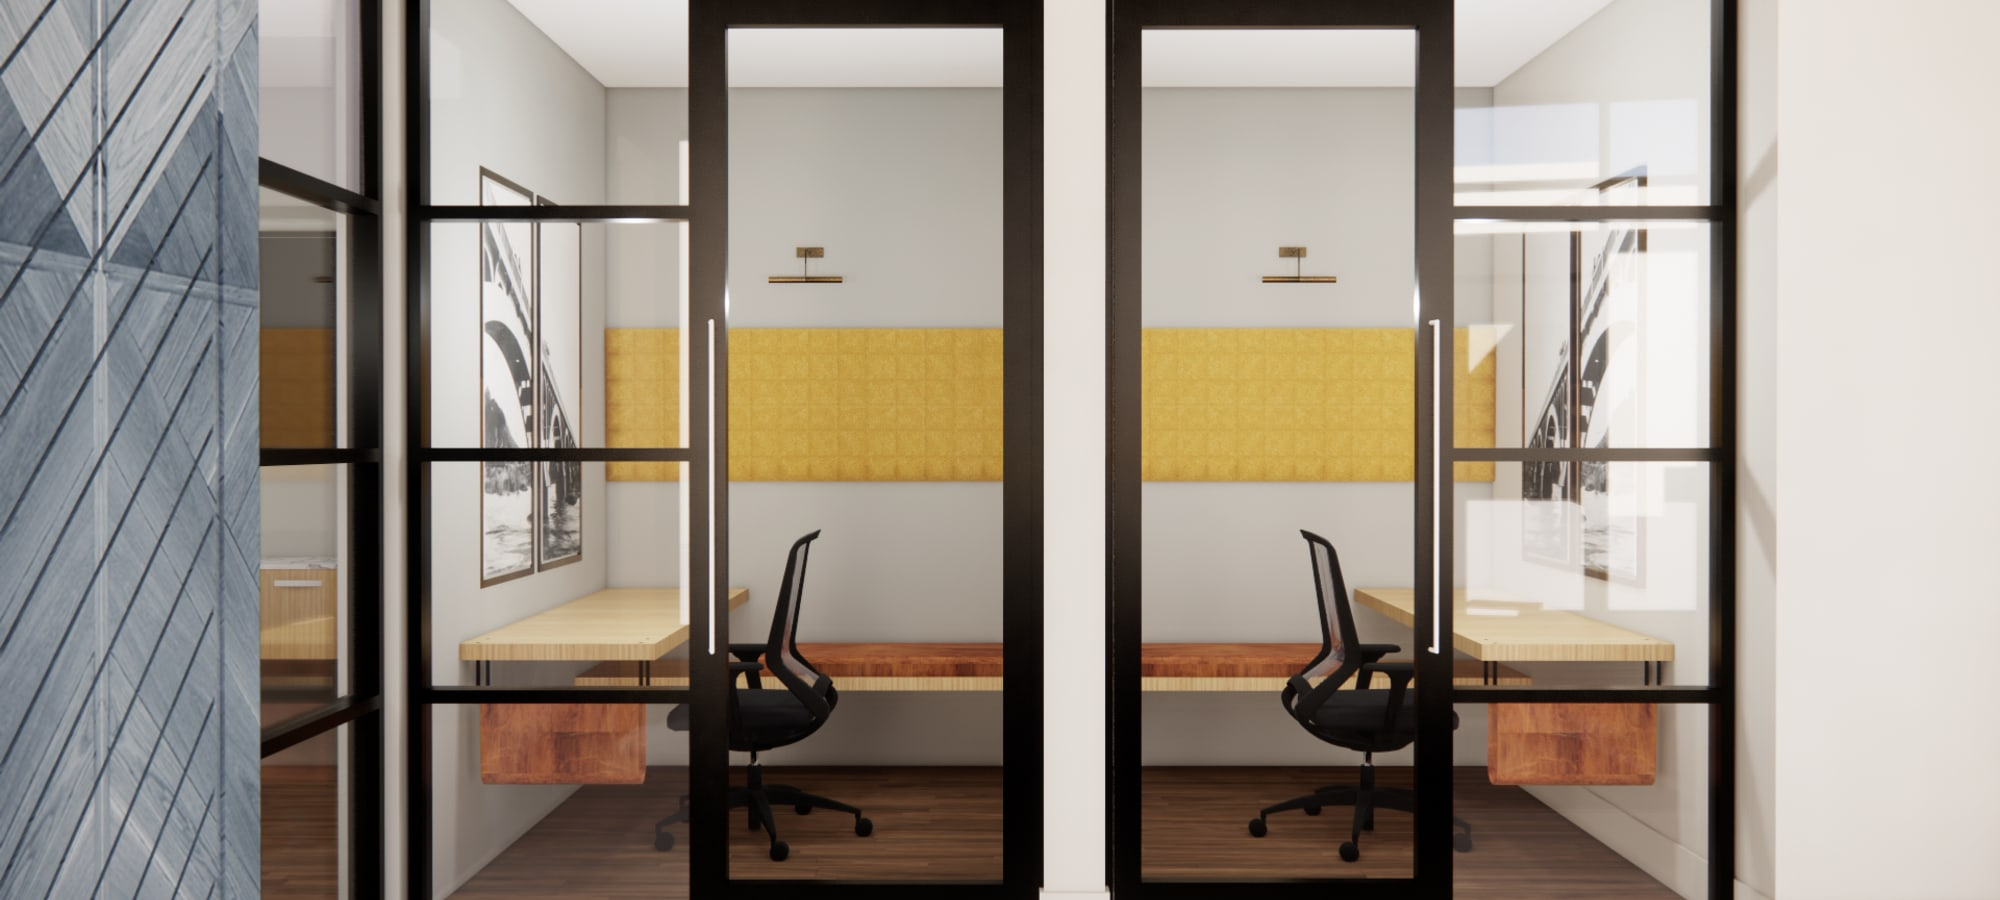 Rendering of office spaces residents can use at The Piedmont in Tempe, Arizona